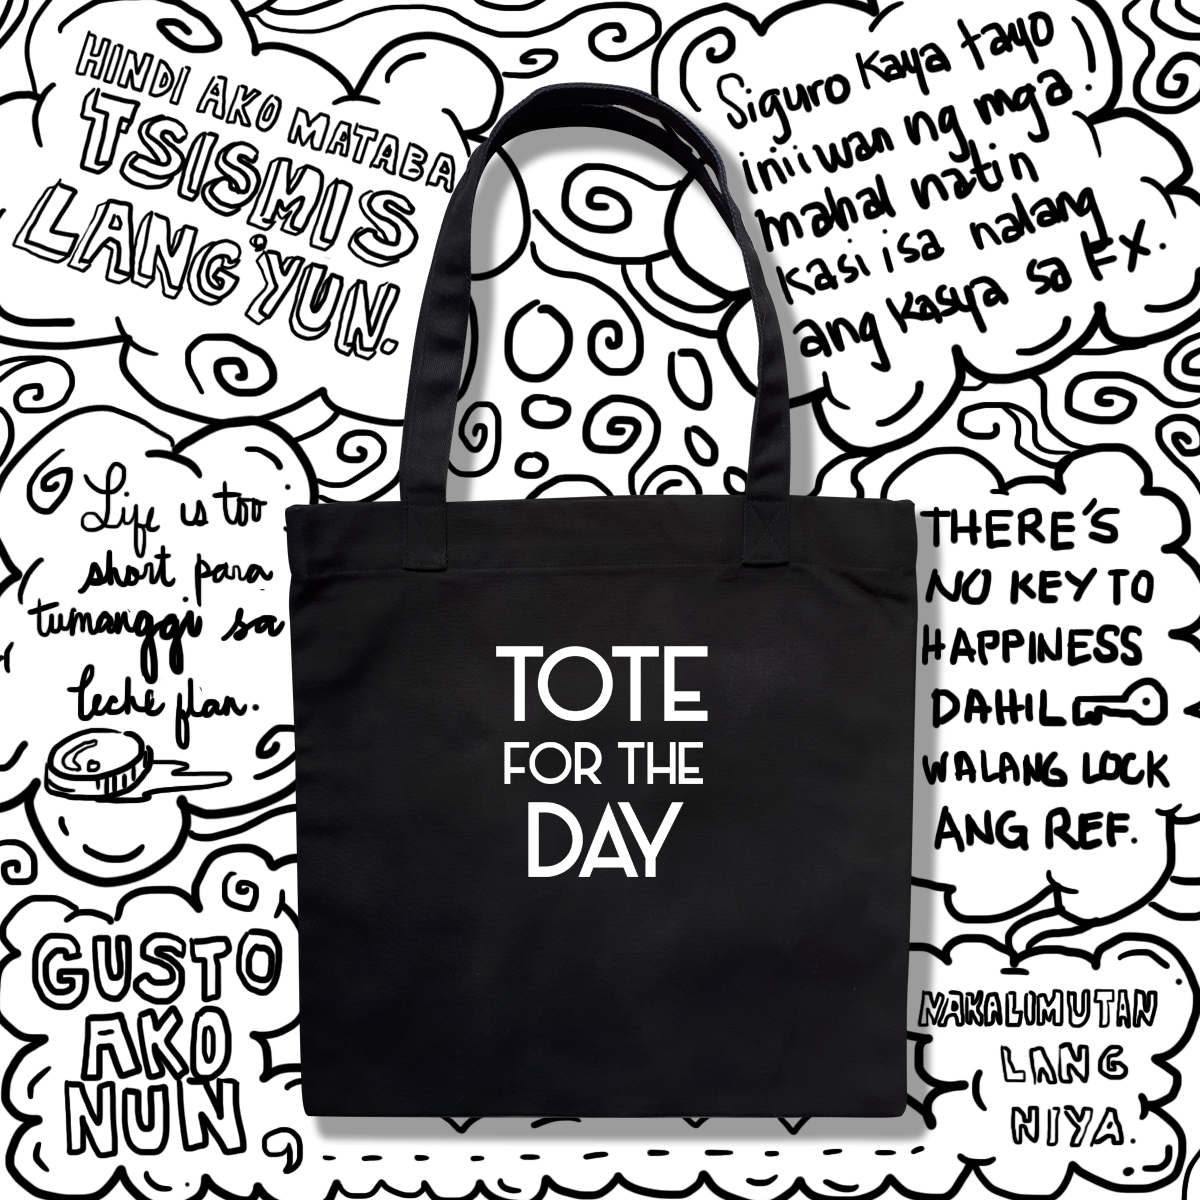 Tote for the Day Keri Ko Tote